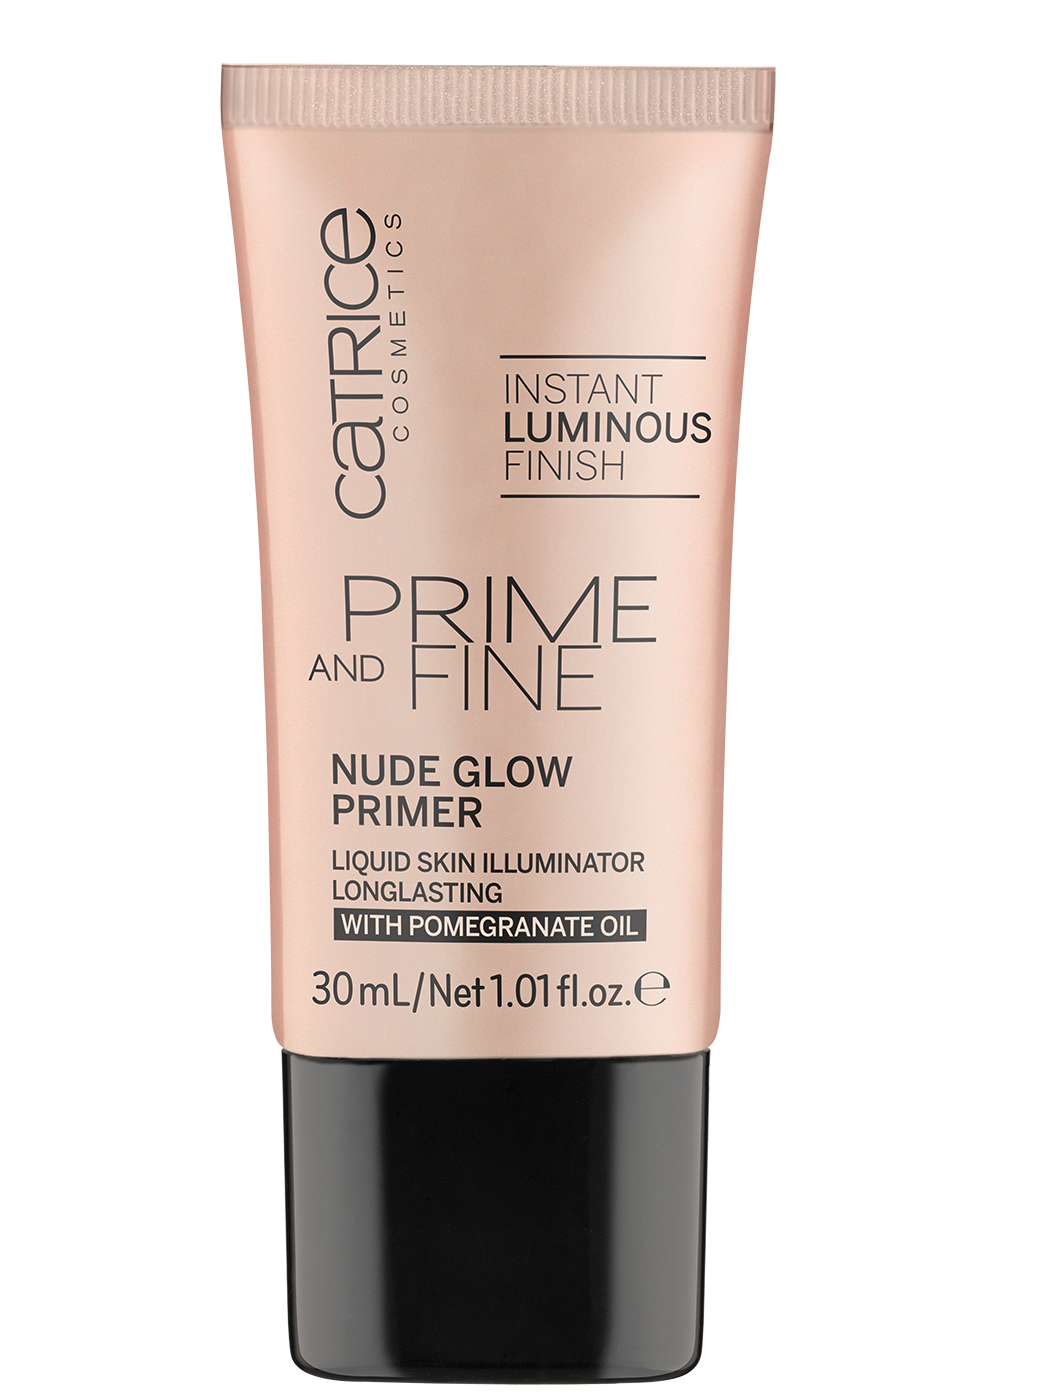 catr_nude-glow-primer_1477409532.png